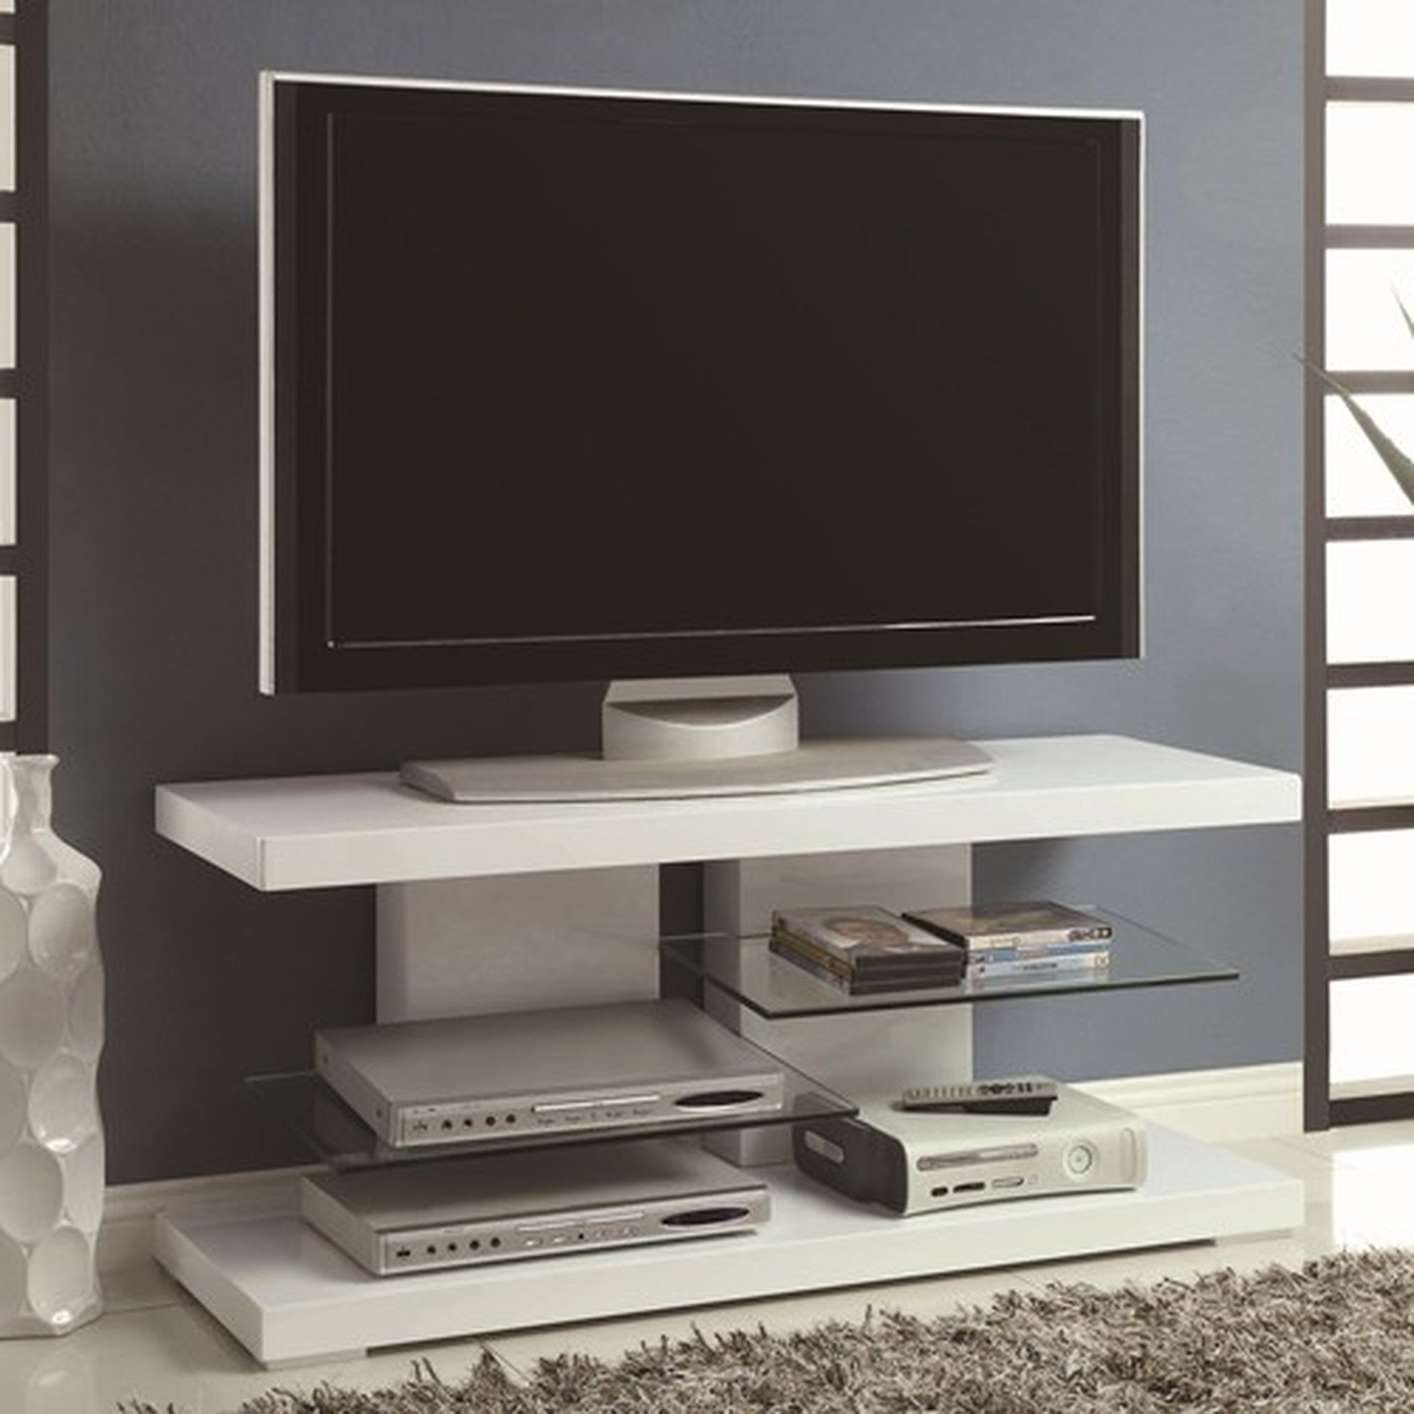 White Glass Tv Stand – Steal A Sofa Furniture Outlet Los Angeles Ca Intended For Glass Tv Stands (View 3 of 15)